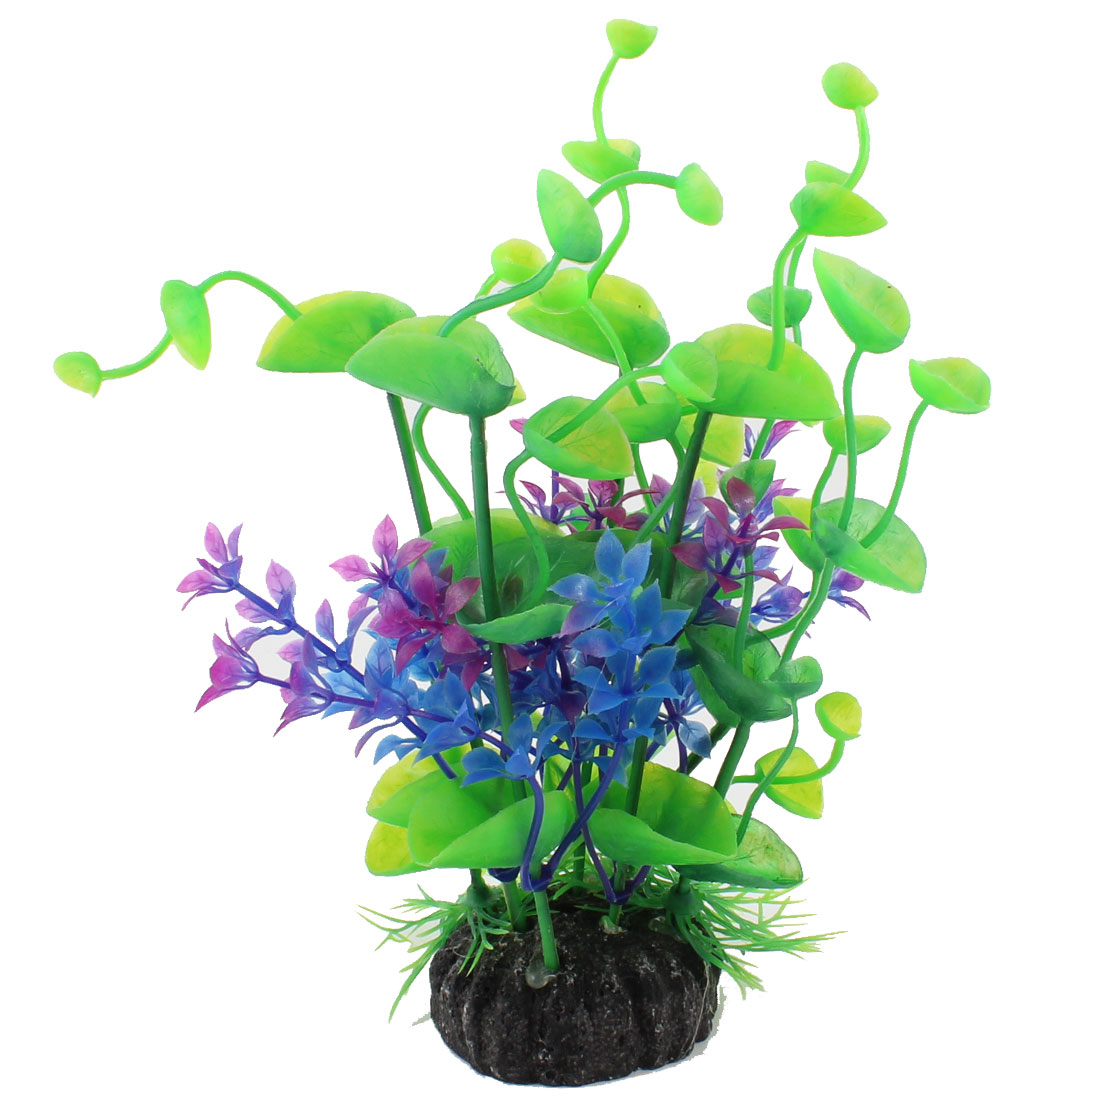 "Blue Green Purpel Plastic Plants Grass Landscaping 7.9"" for Fish Tank"